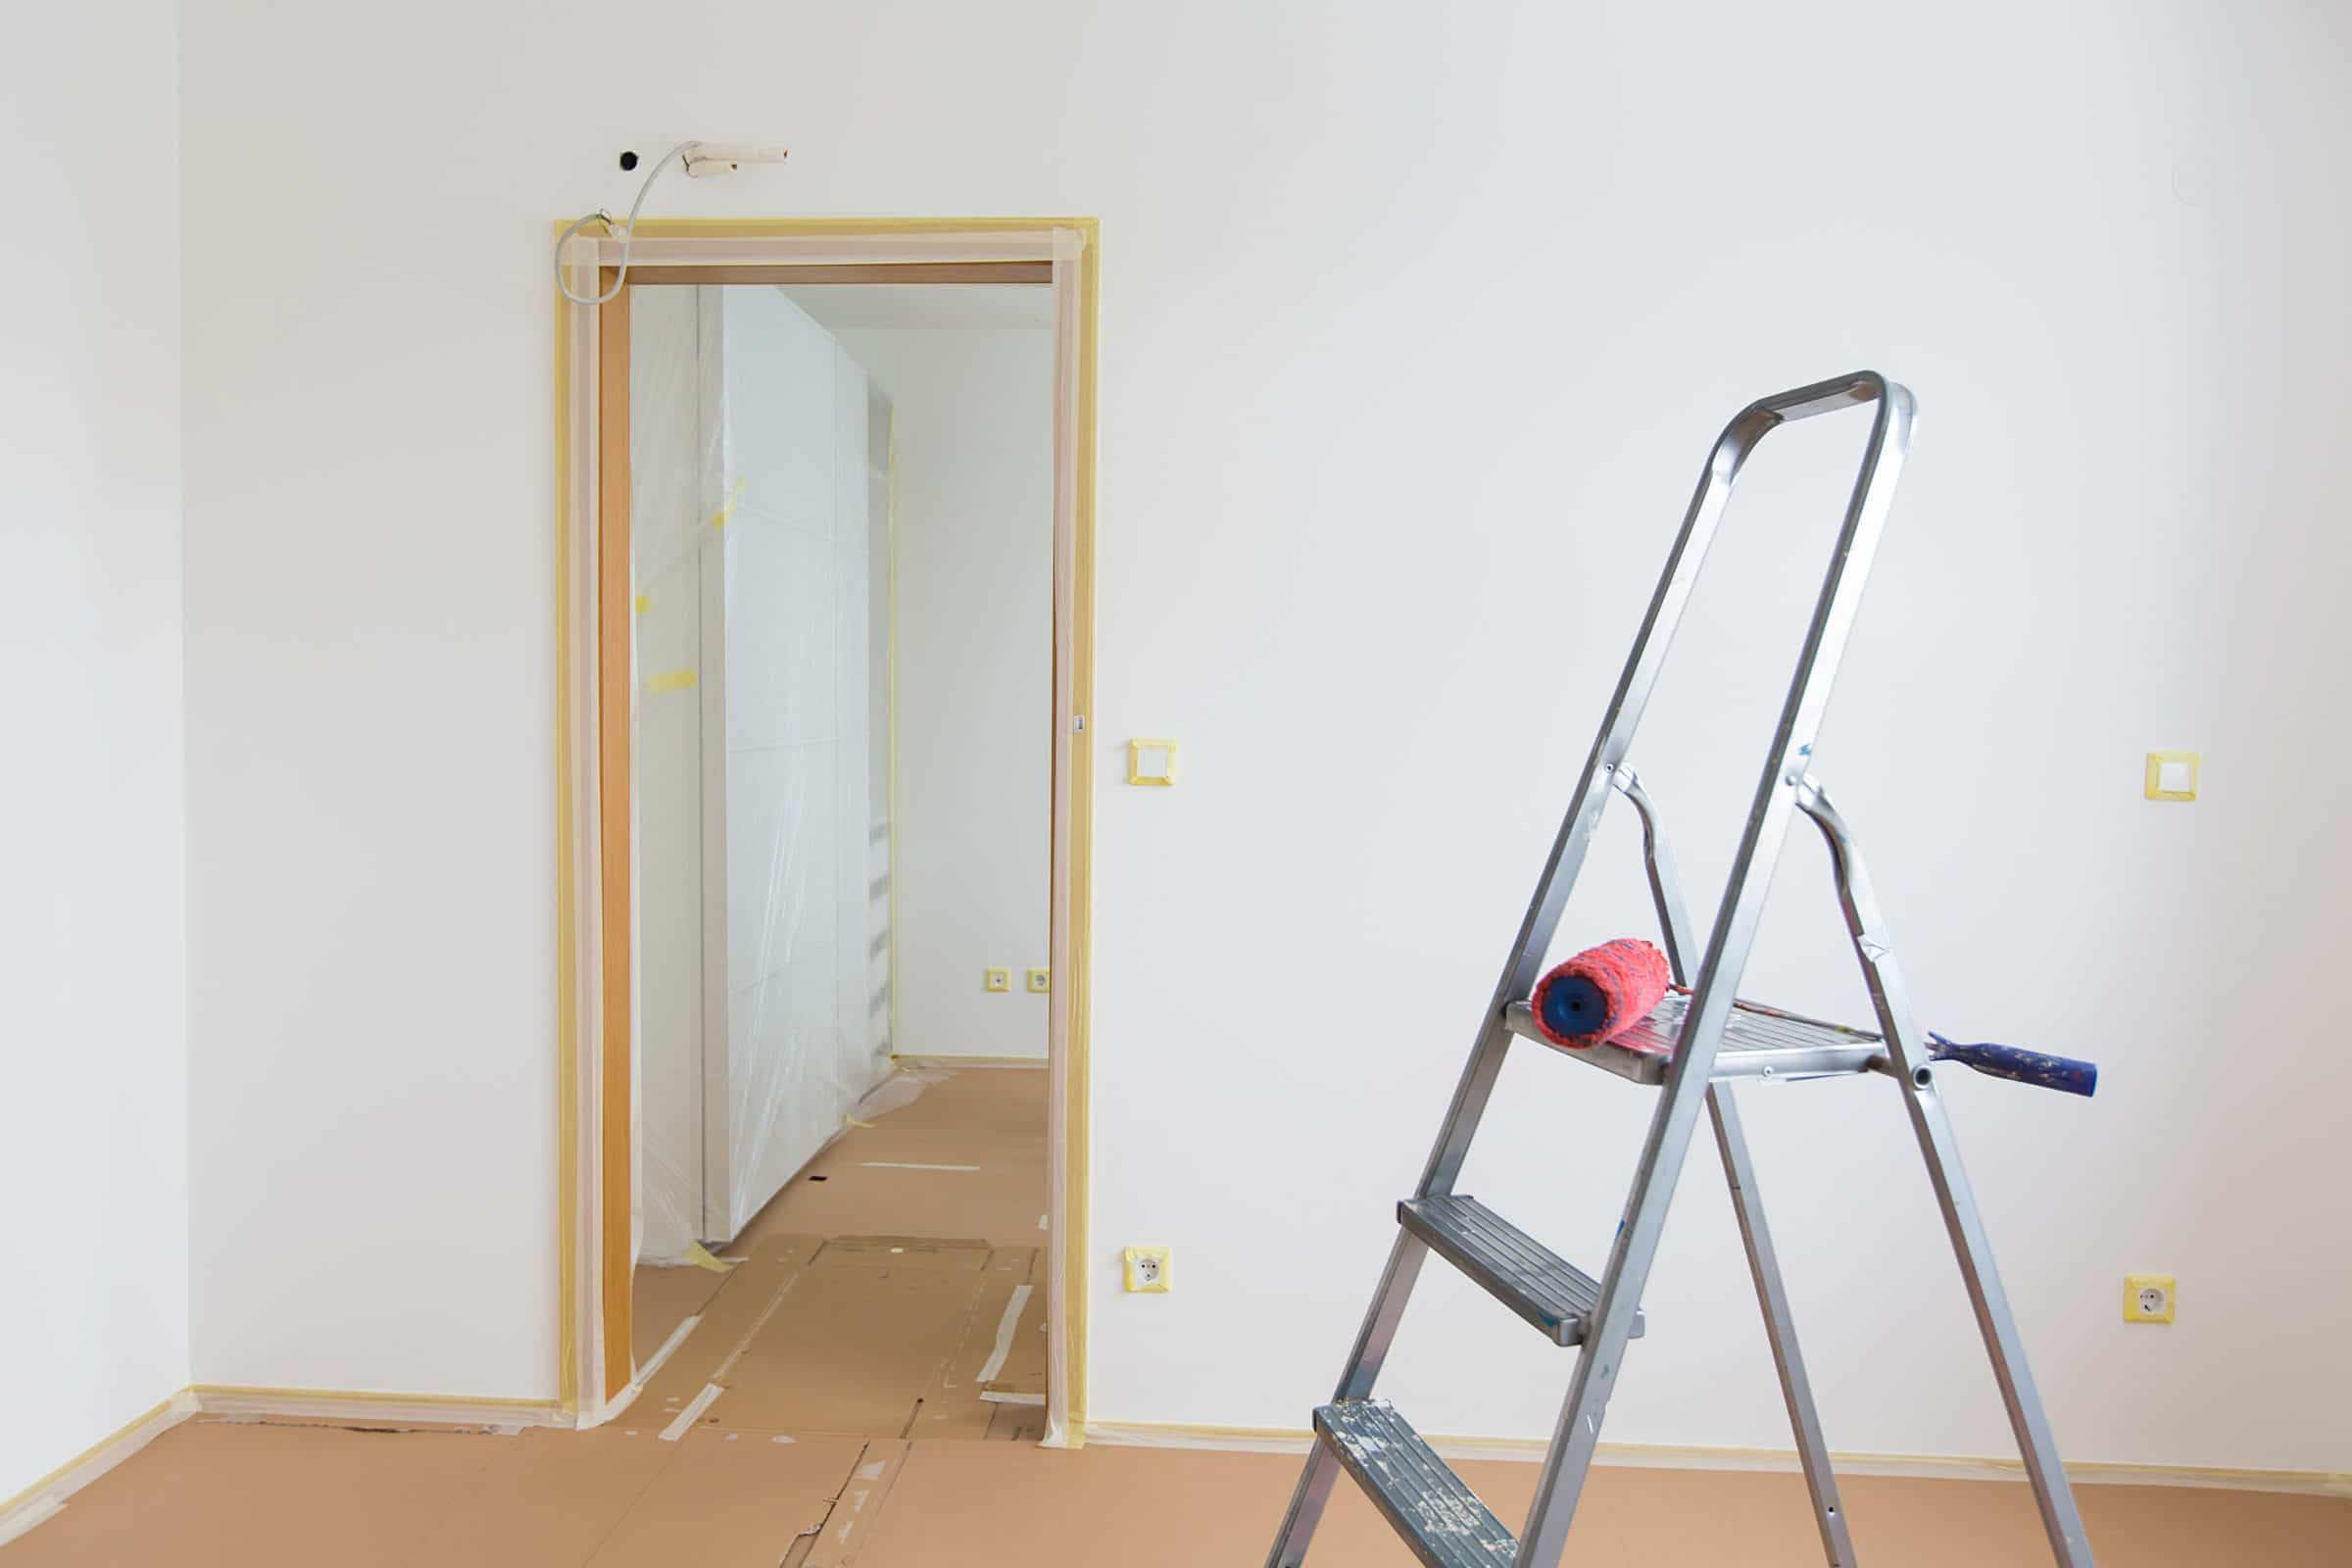 Room with decorators tape applied